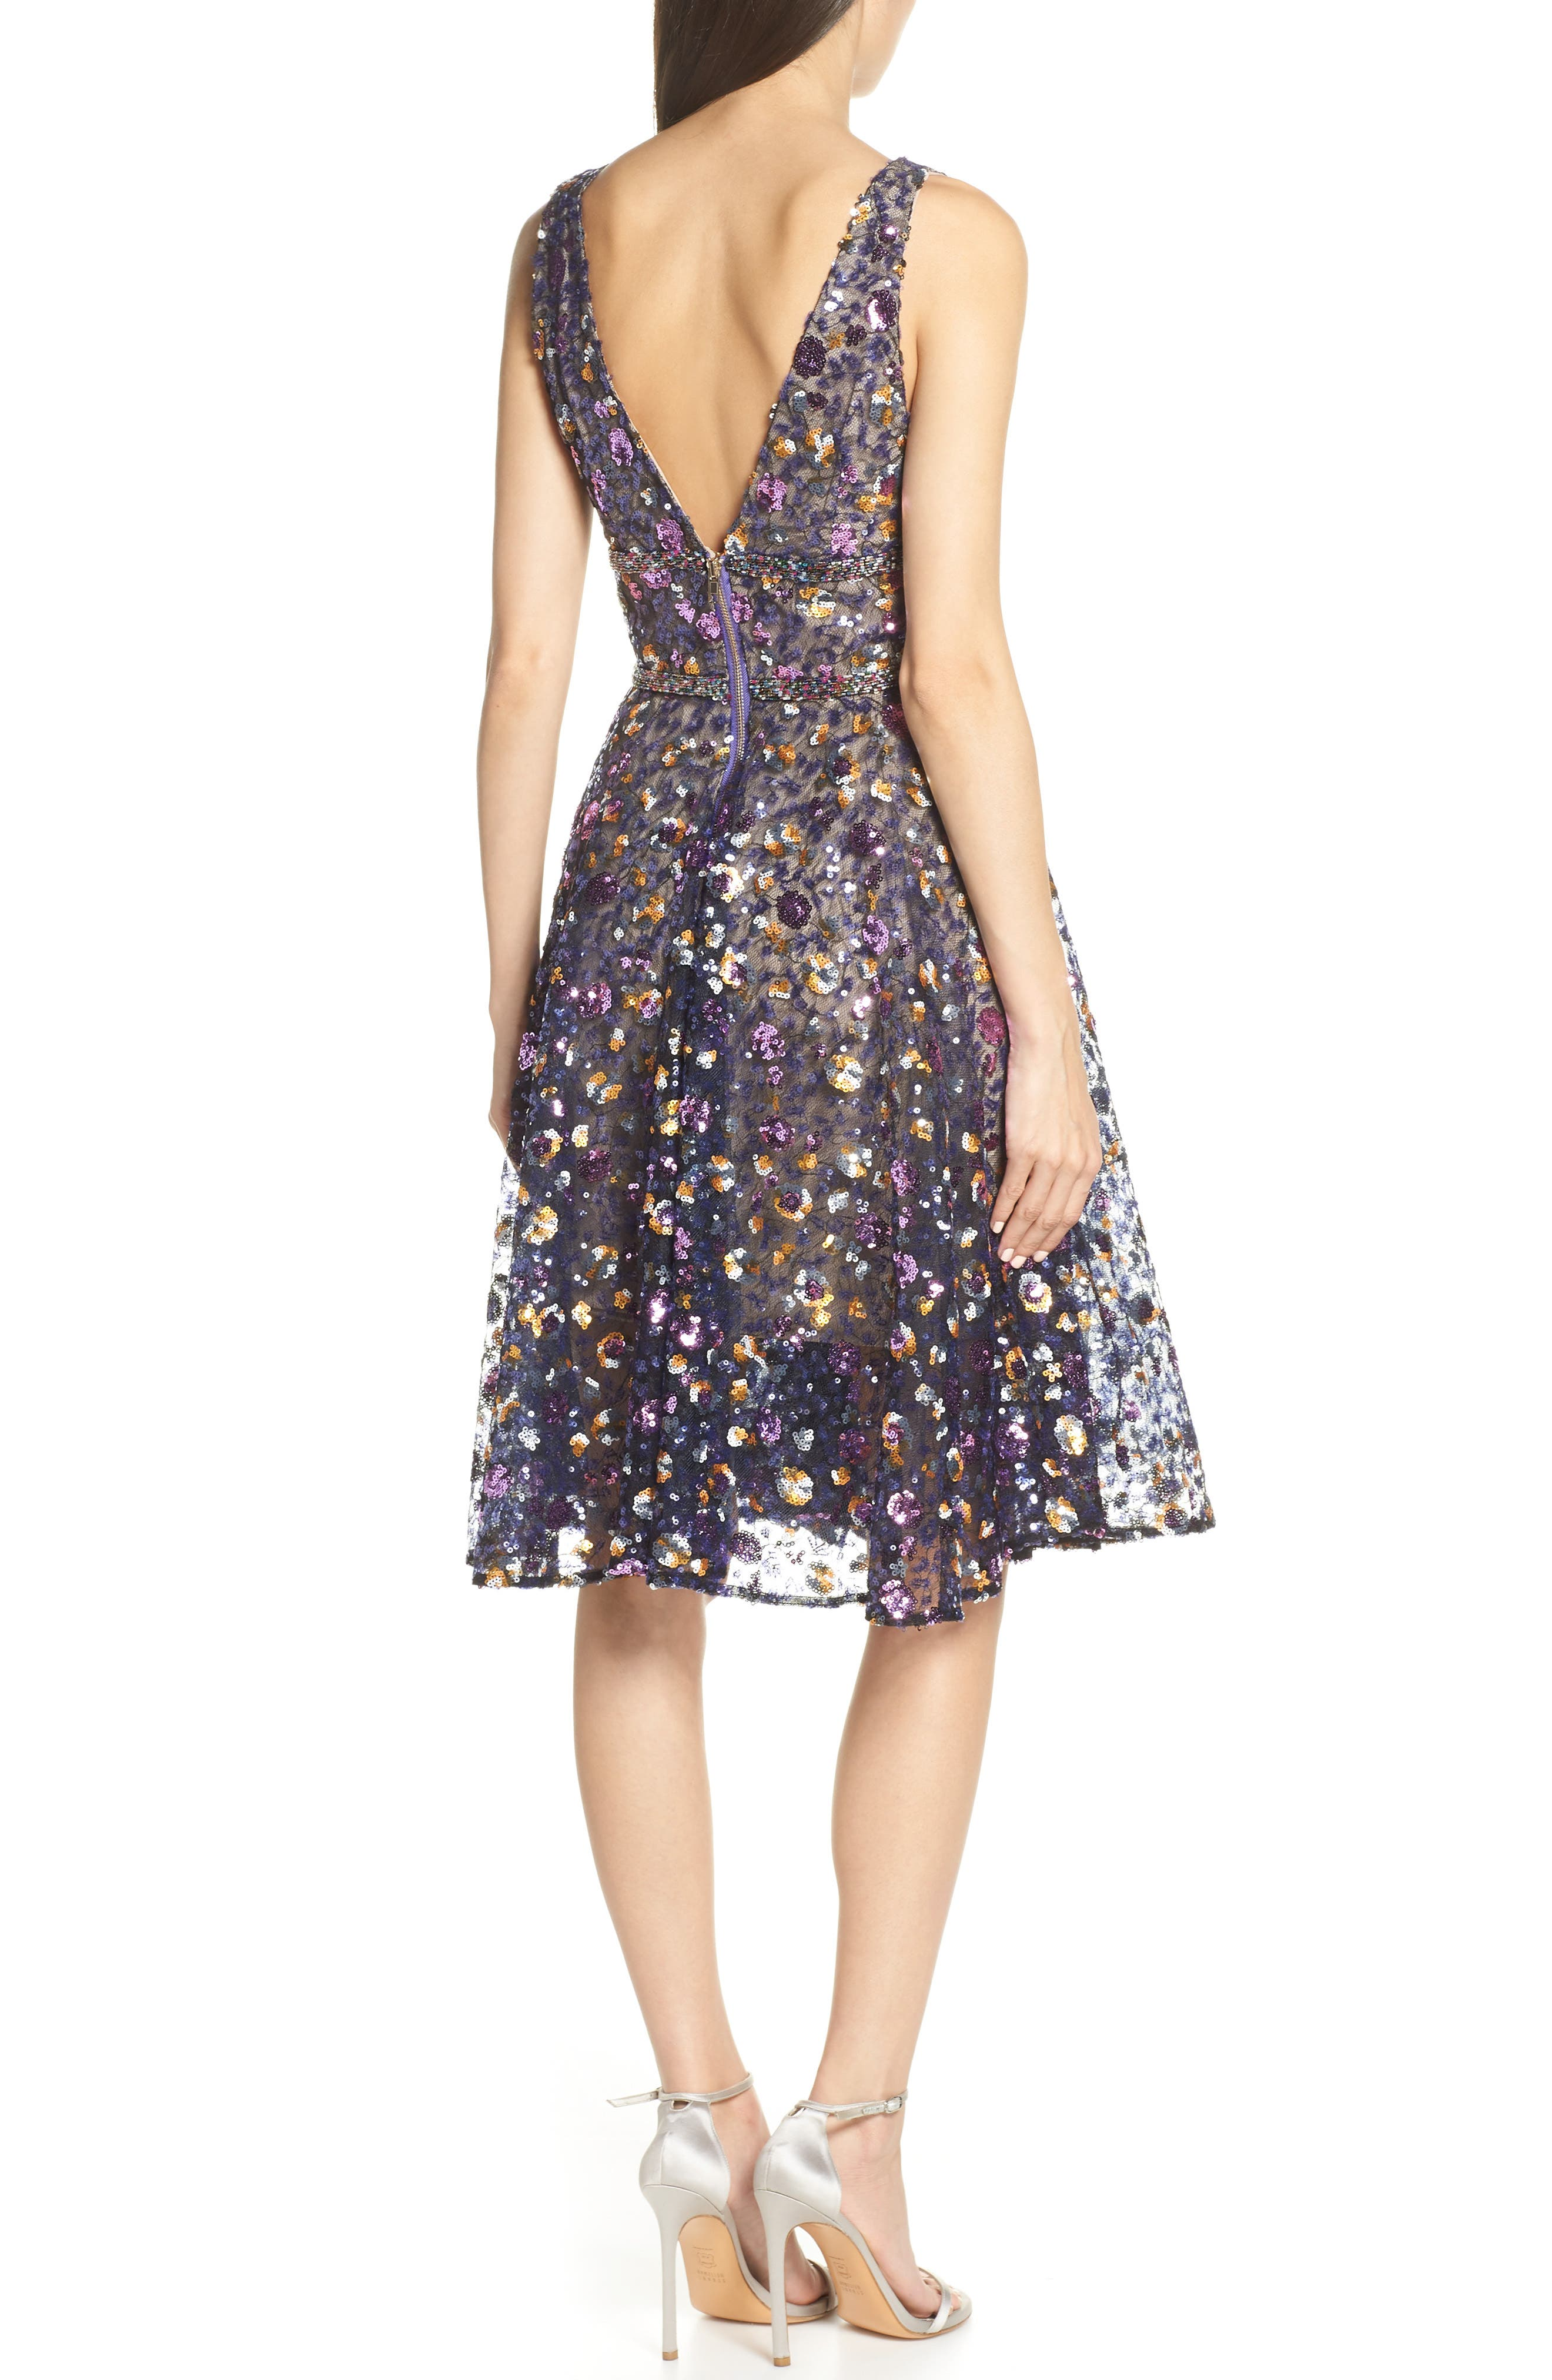 BRONX AND BANCO, Sequin Fit & Flare Dress, Alternate thumbnail 2, color, MULTICOLOR